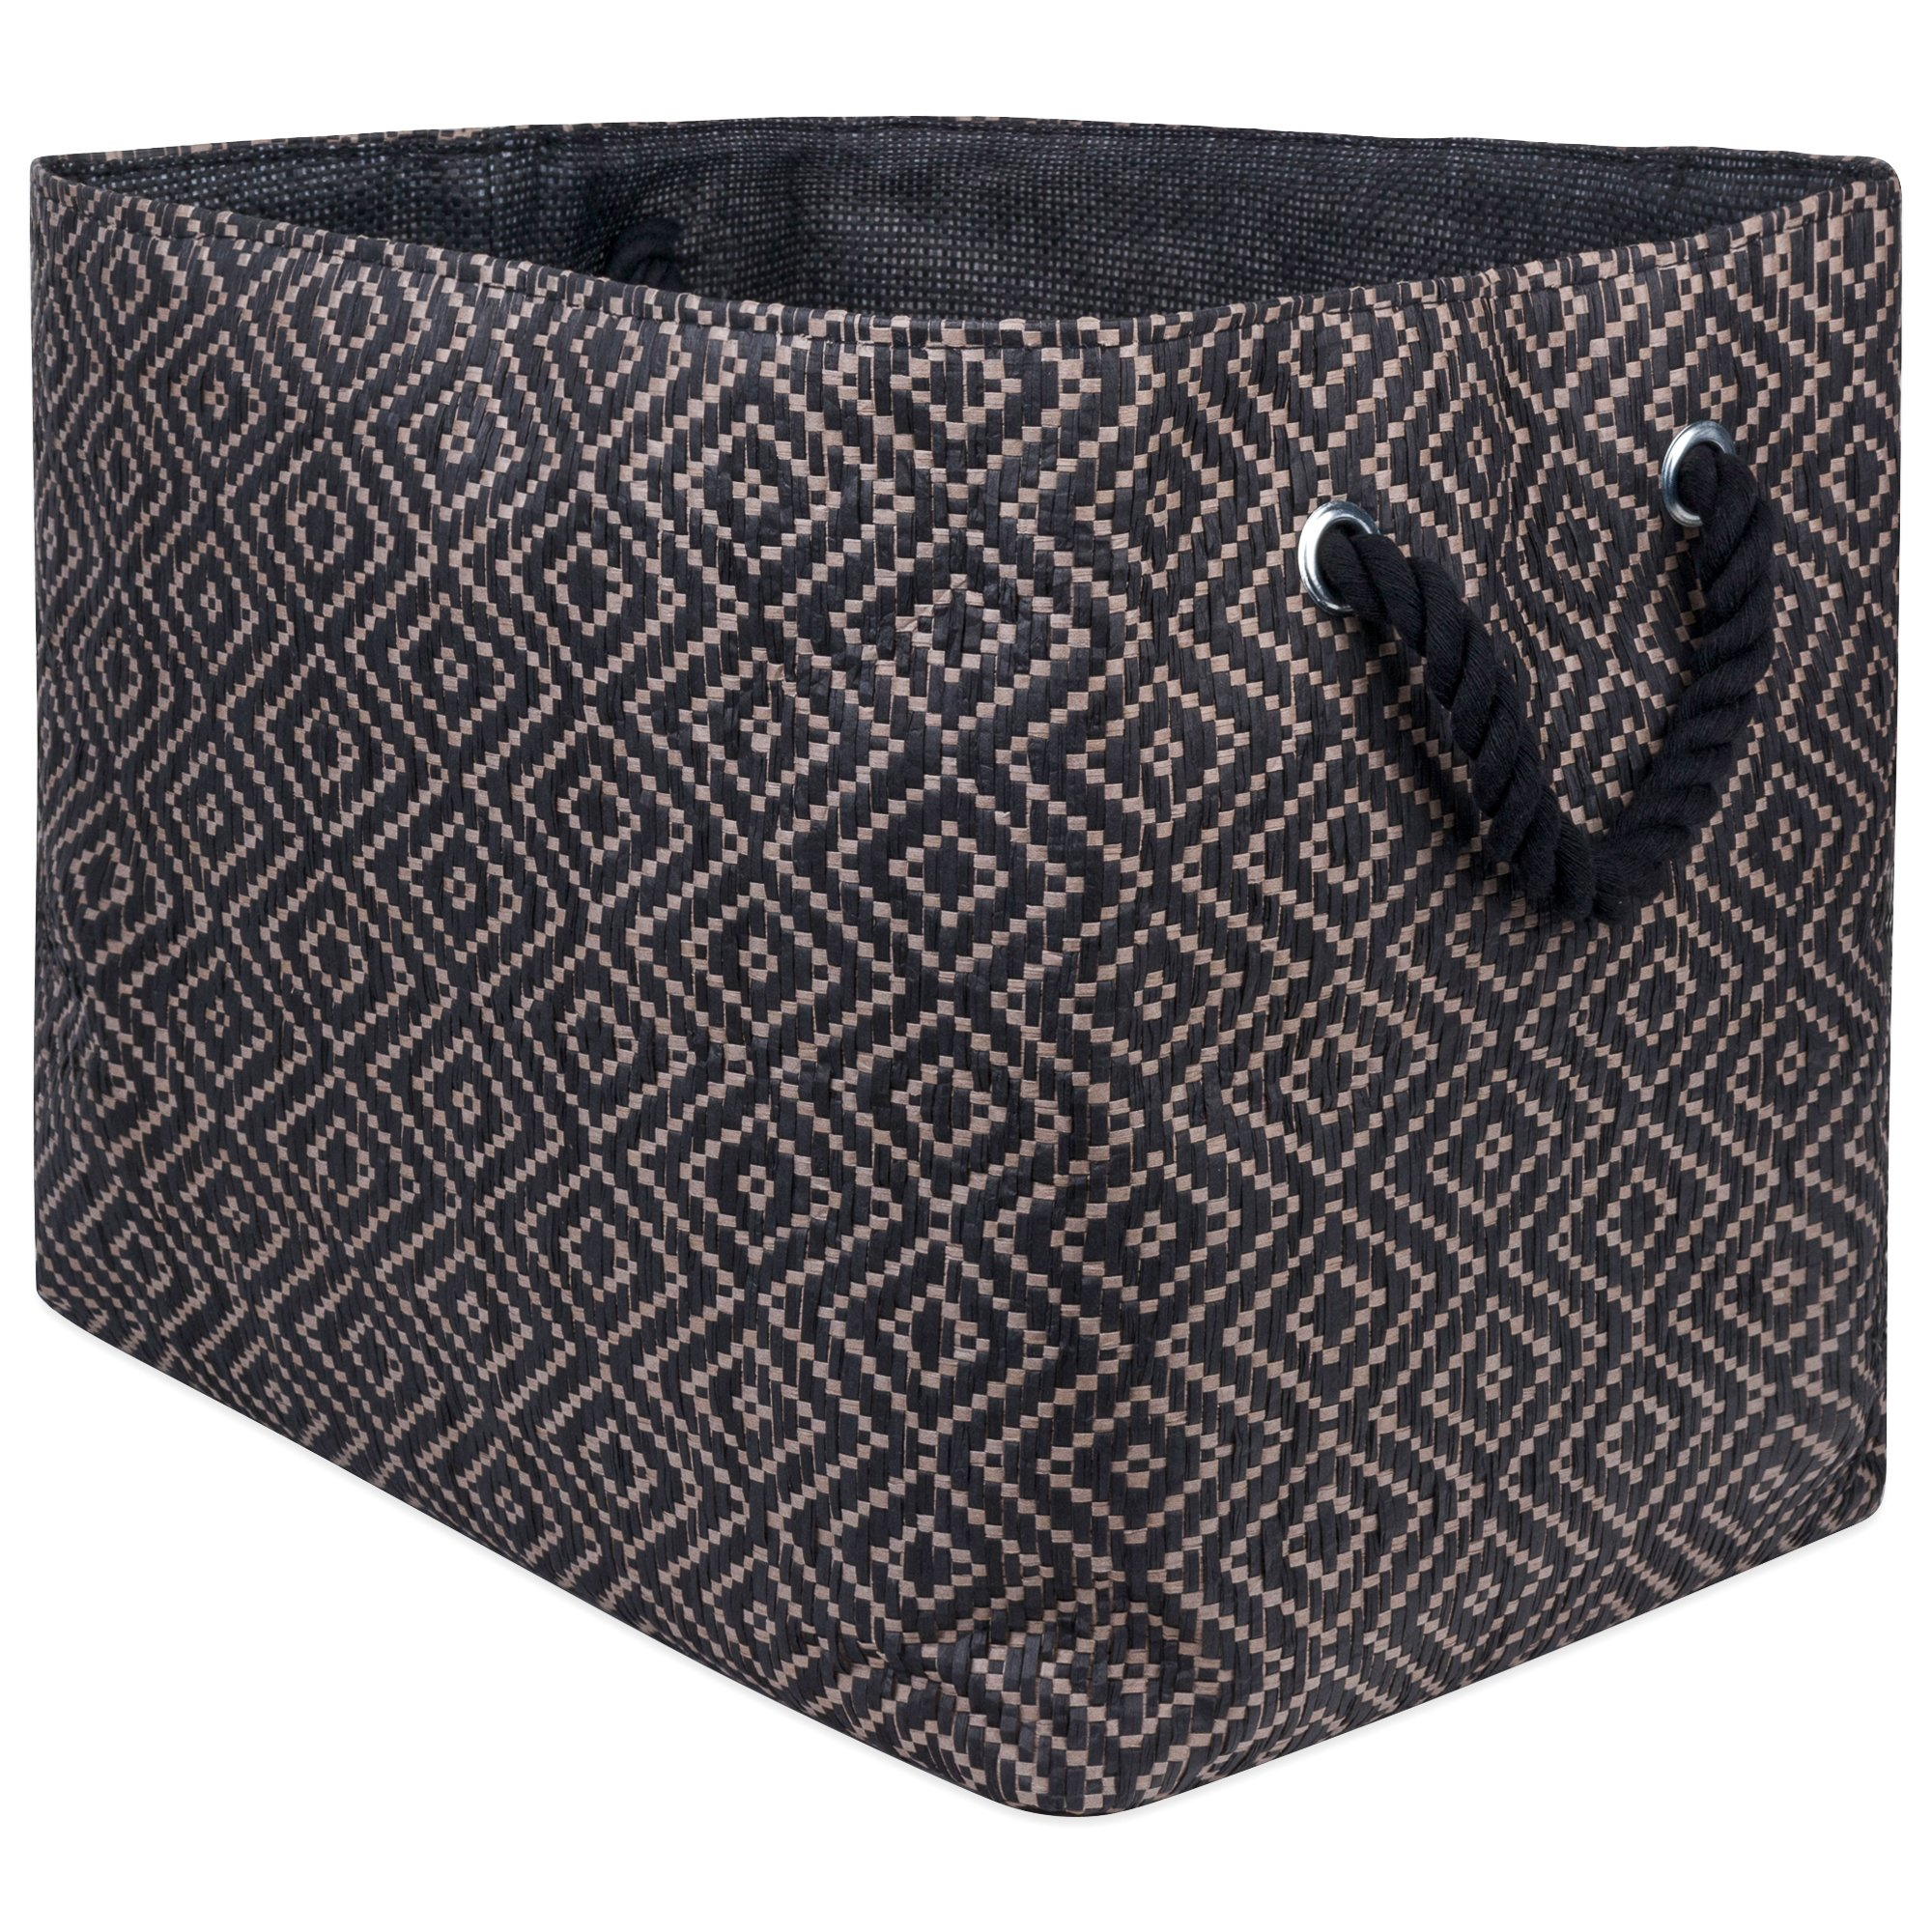 "DII Oversize Woven Paper Storage Basket or Bin, Collapsible & Convenient Home Organization Solution for Office, Bedroom, Closet, Toys, Laundry (Large - 17x12x12""), Brown & Black Diamond Basketweave by DII"